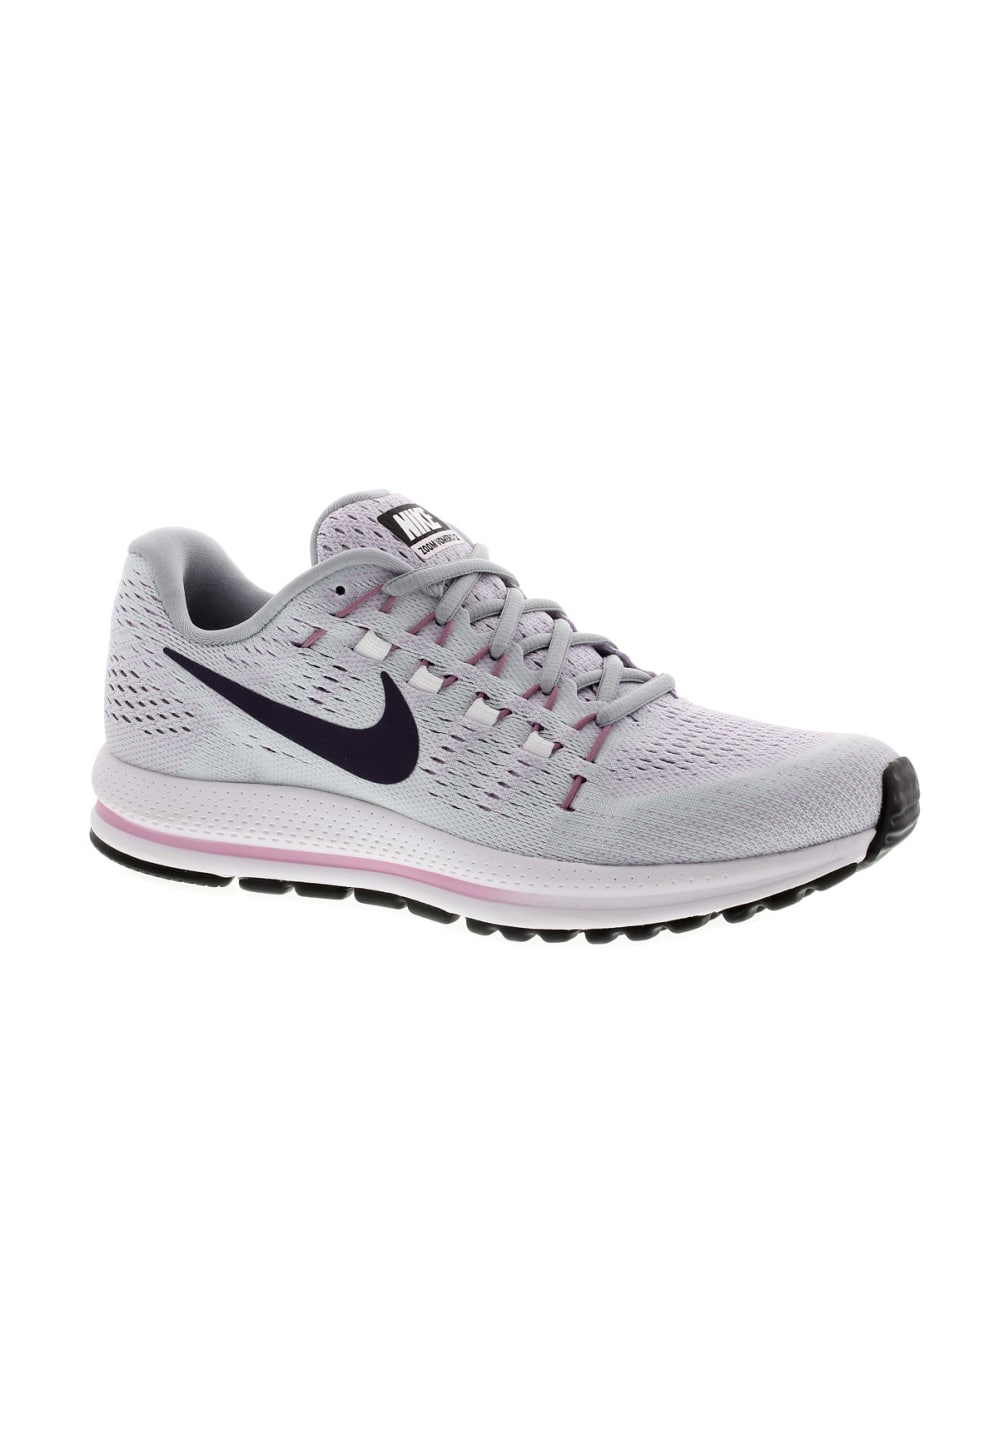 acheter populaire 5d354 cad1a Nike Air Zoom Vomero 12 - Running shoes for Women - Grey